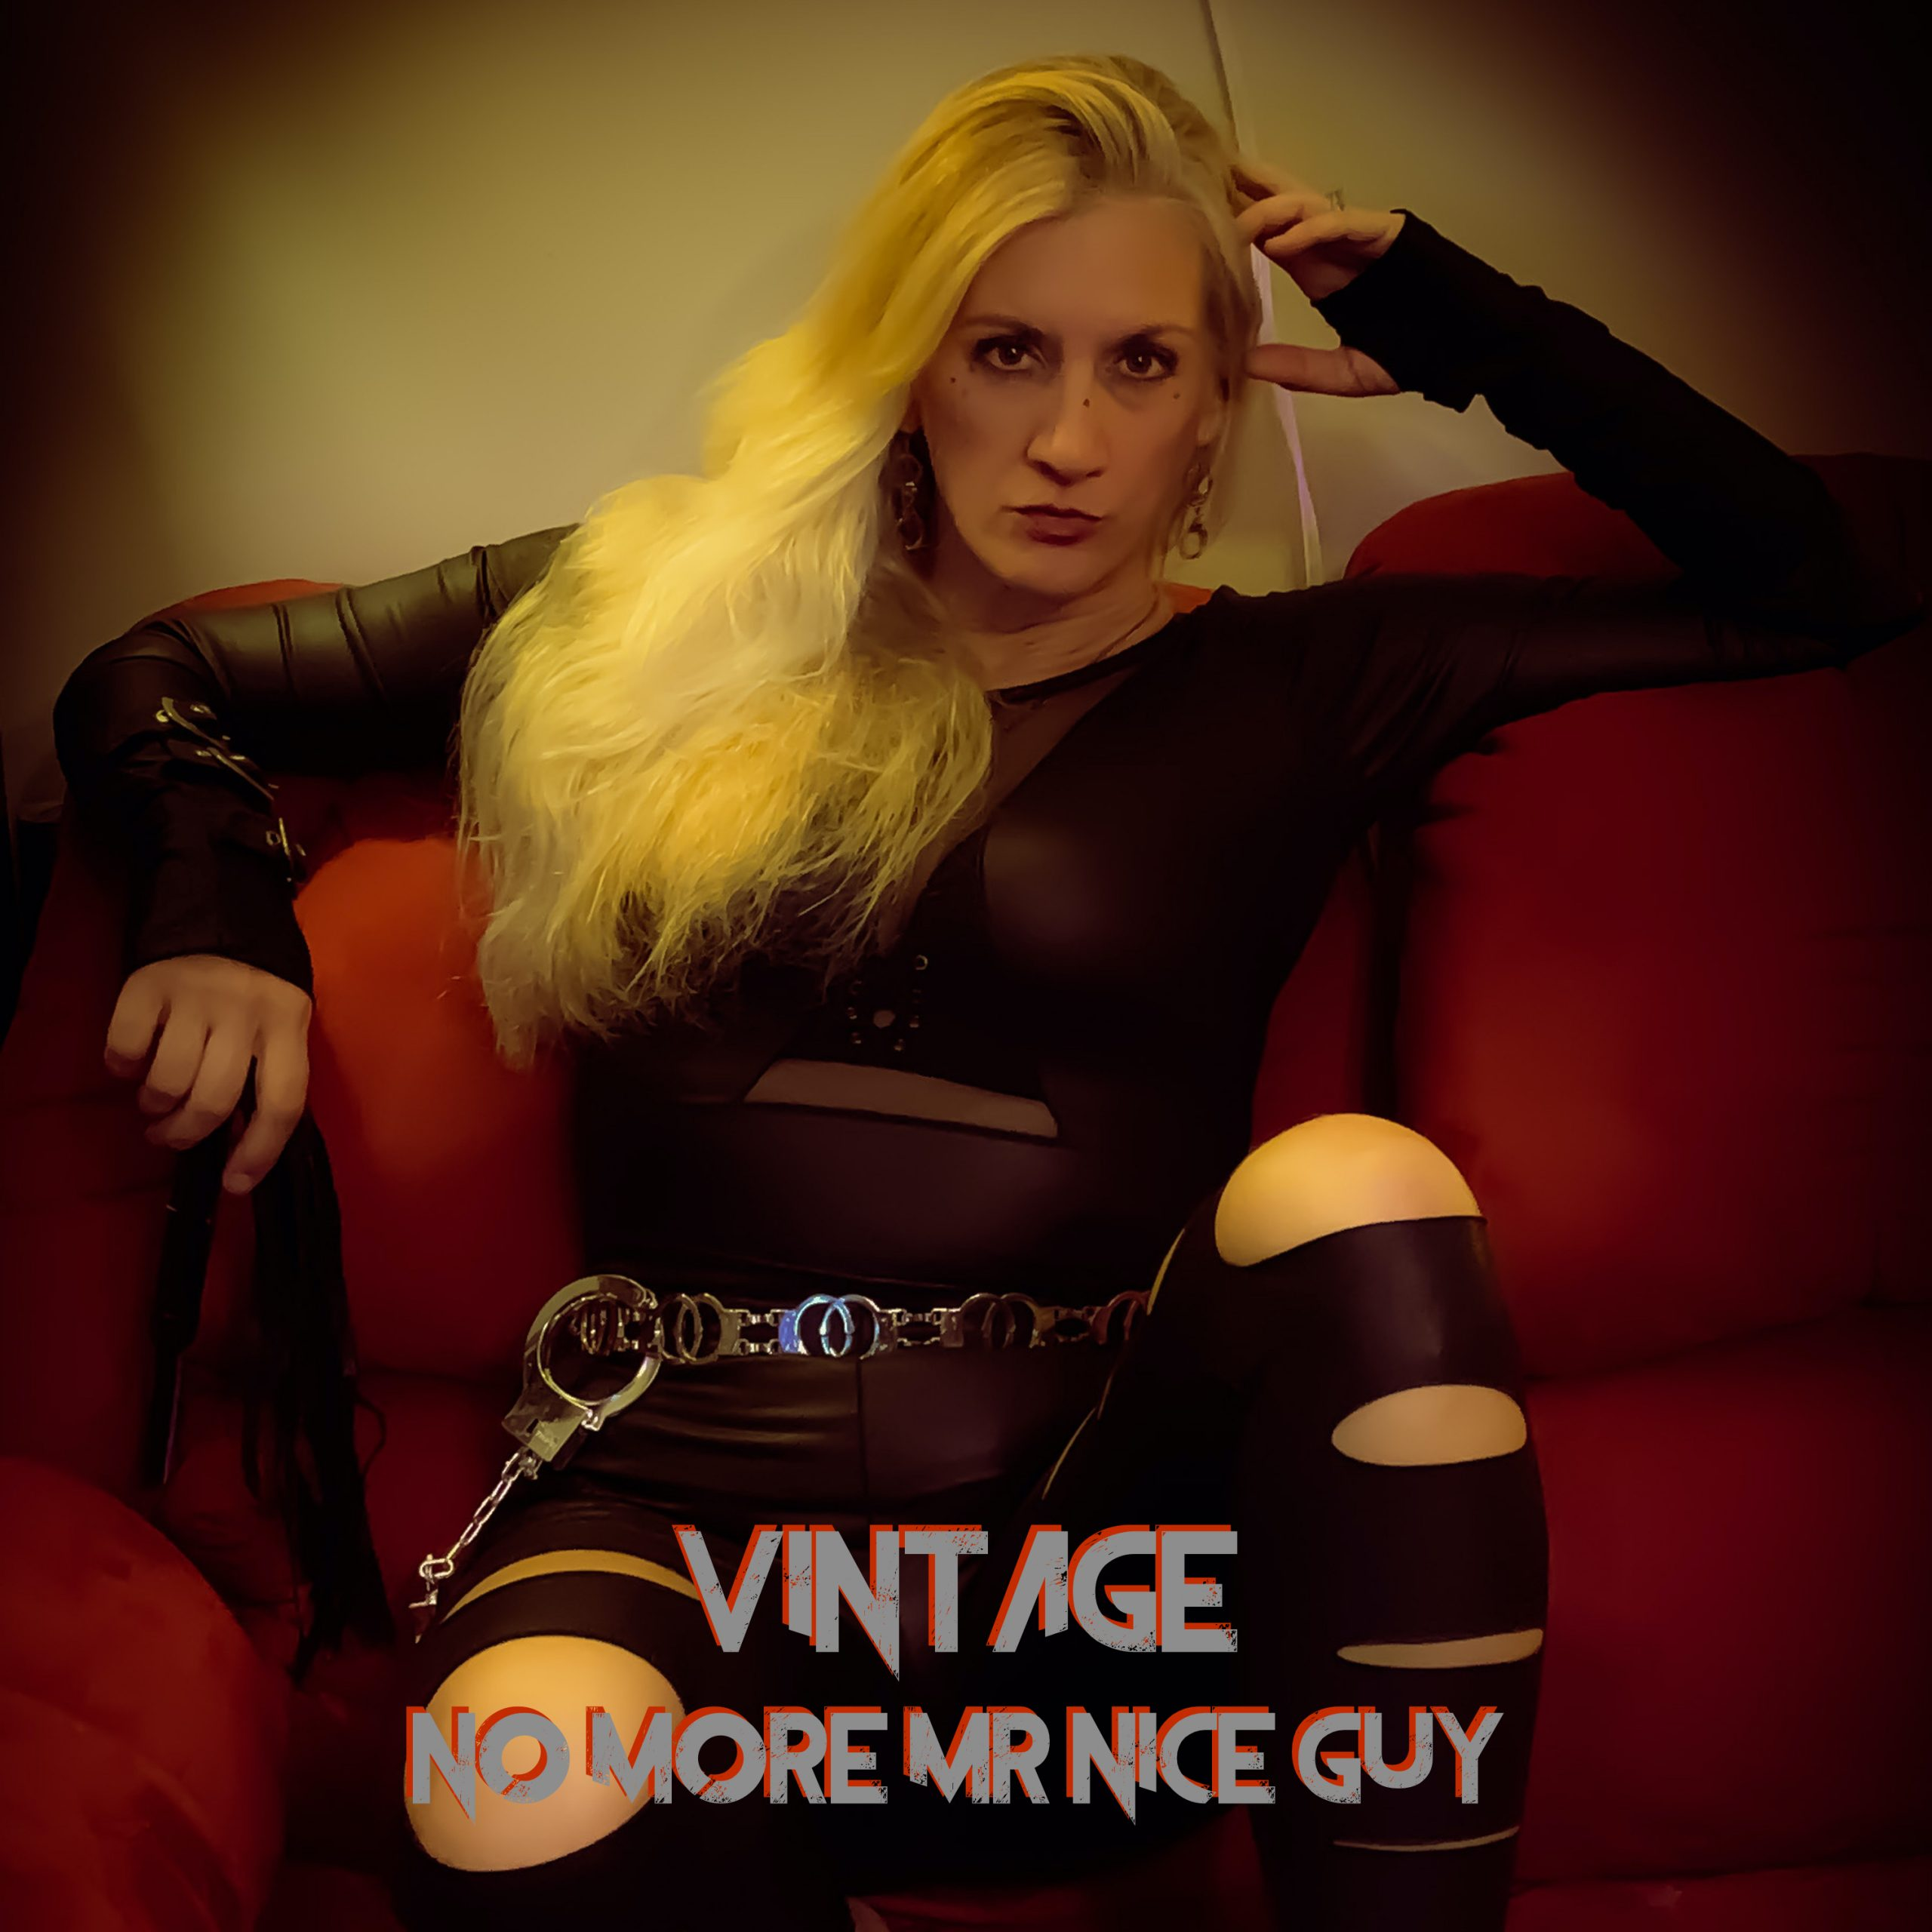 Vintage - No More Mr Nice Guy